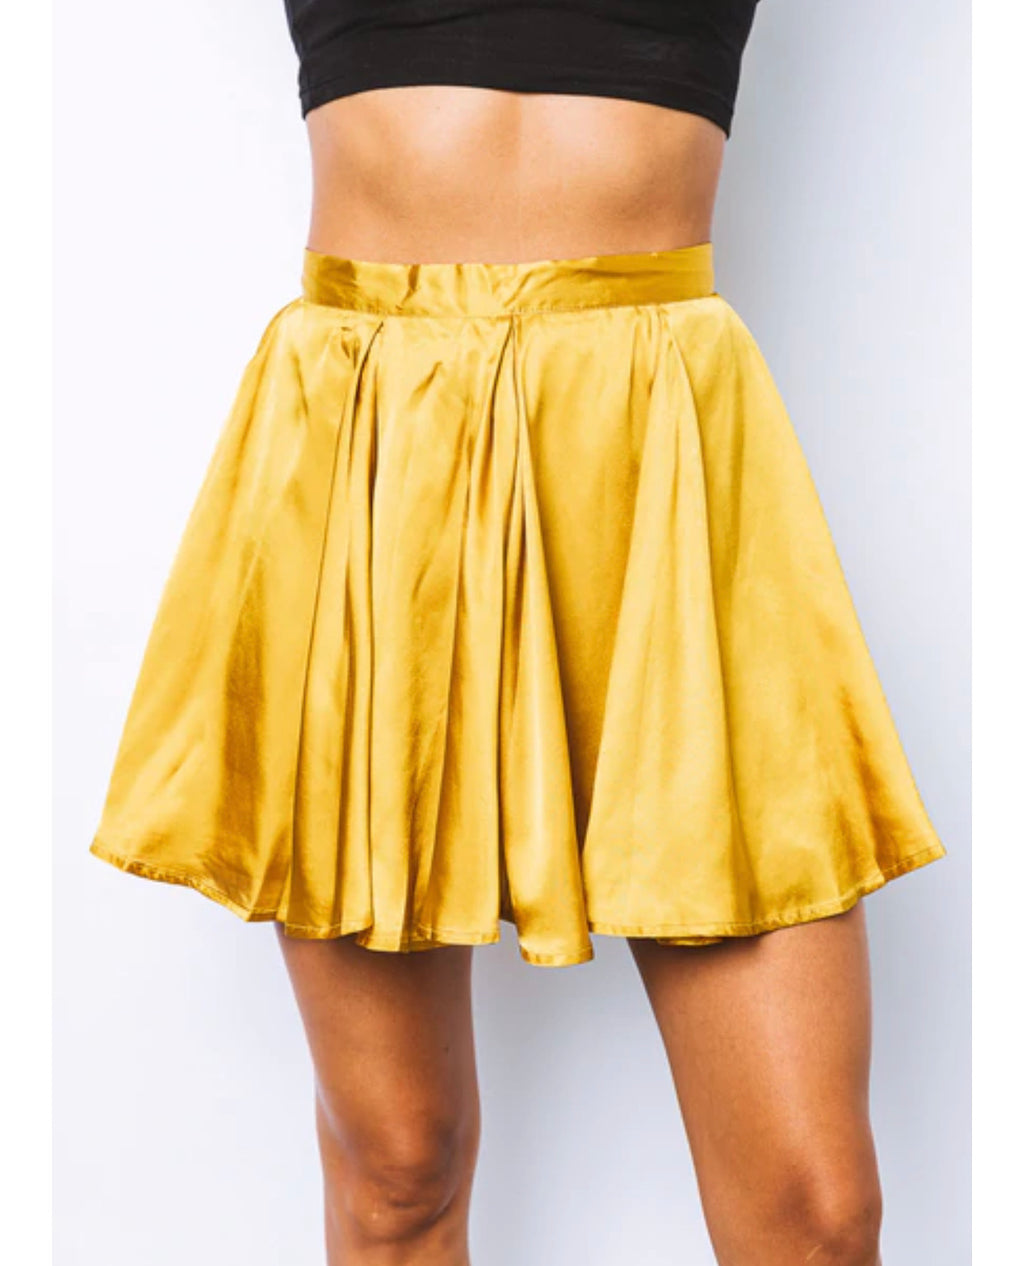 Goldie Pawn Skirt